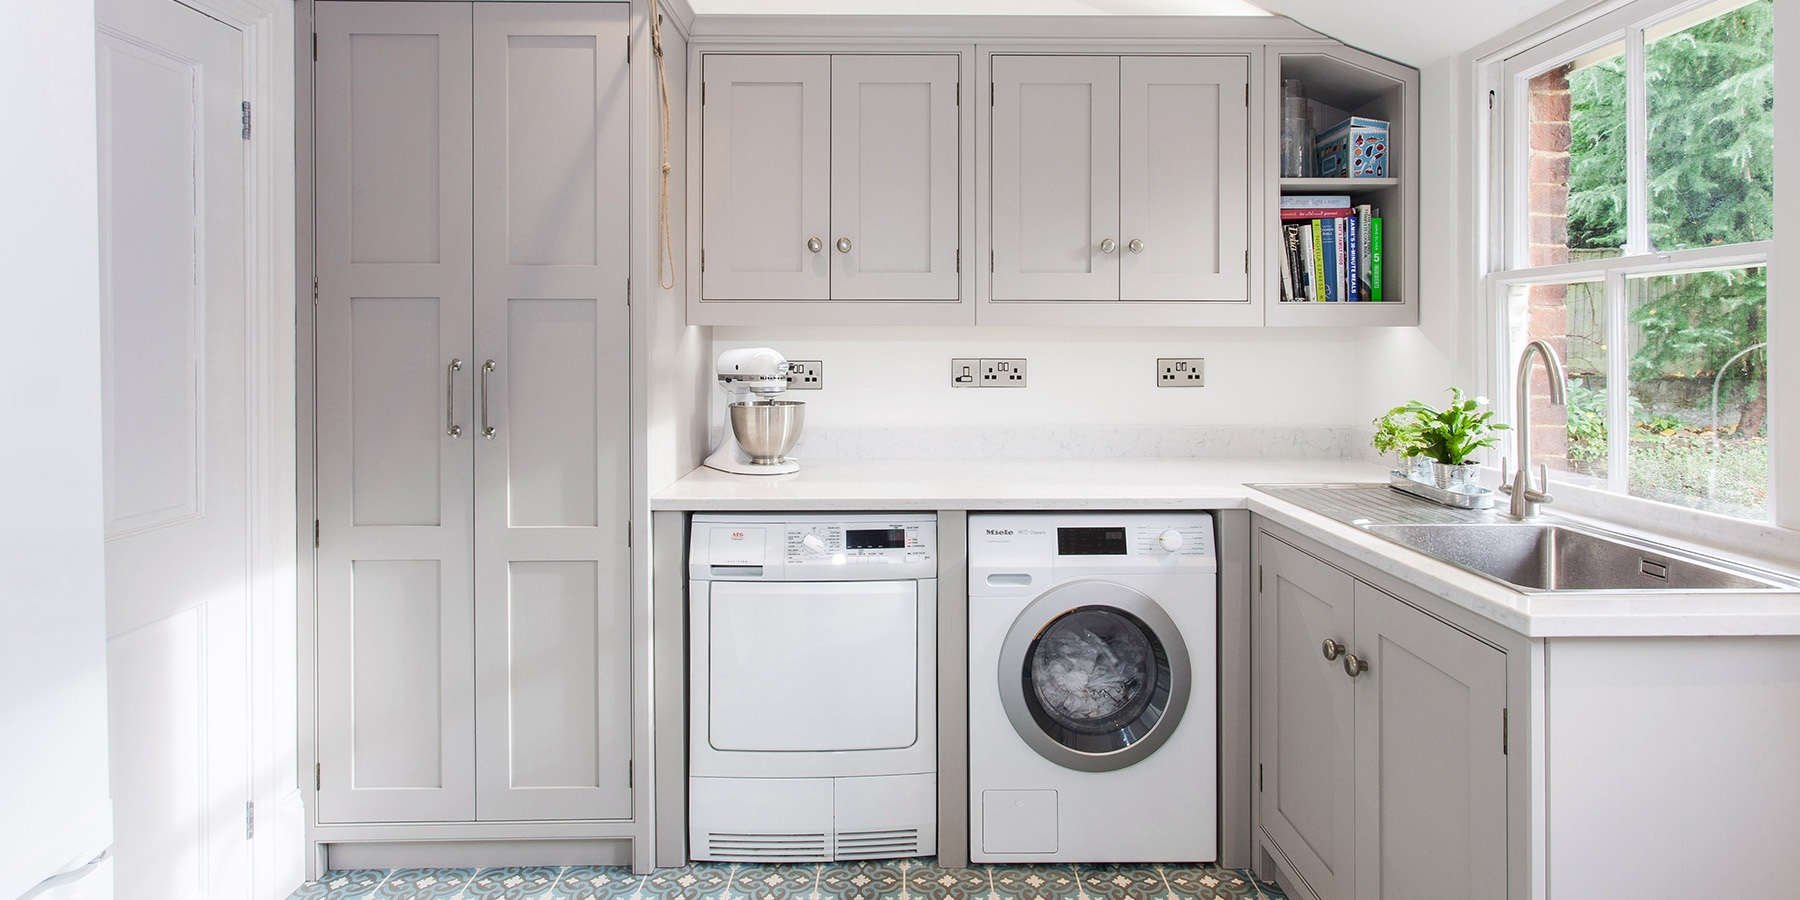 Bespoke, handmade utility room and storage solutions - Burlanes design and create bespoke, handmade utility rooms, laundry rooms and storage solutions